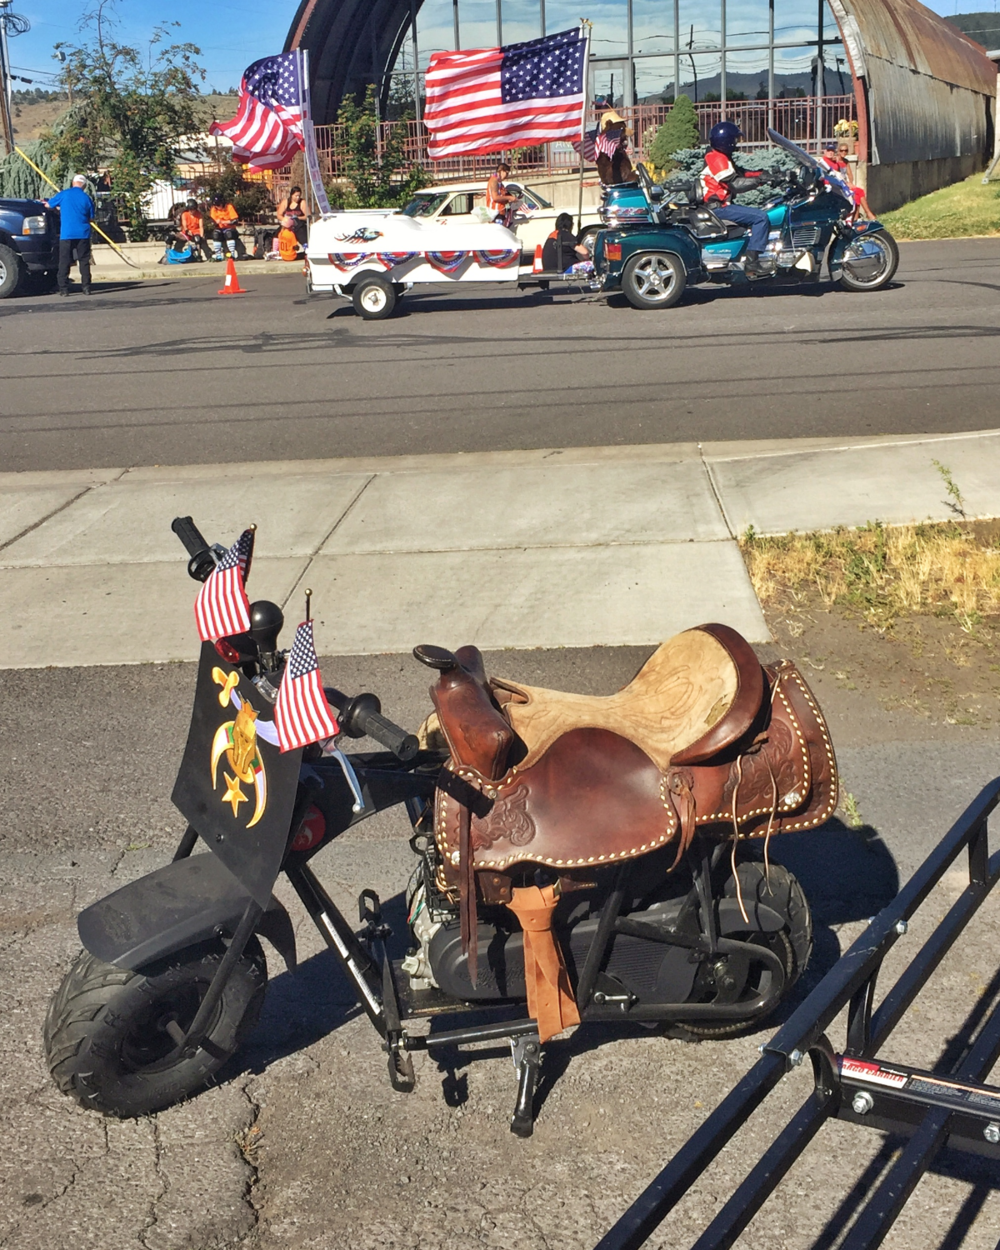 4th of July parade preparations in Klamath Falls OR